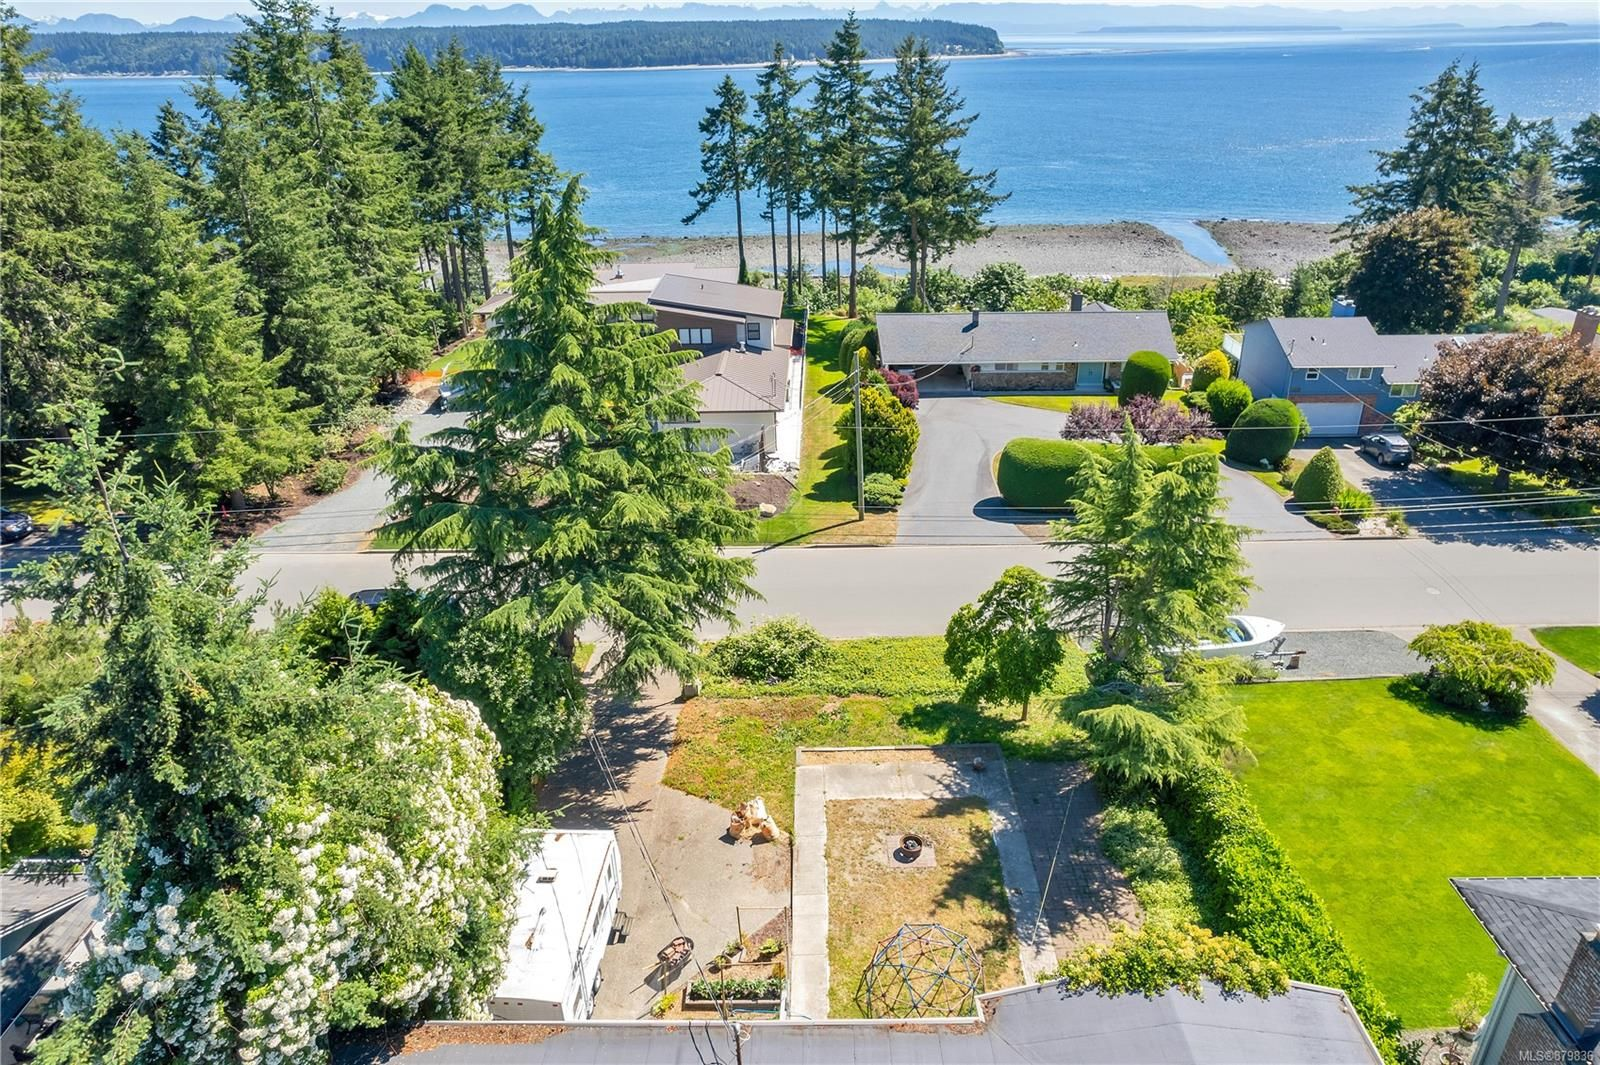 Campbell River ocean view home!